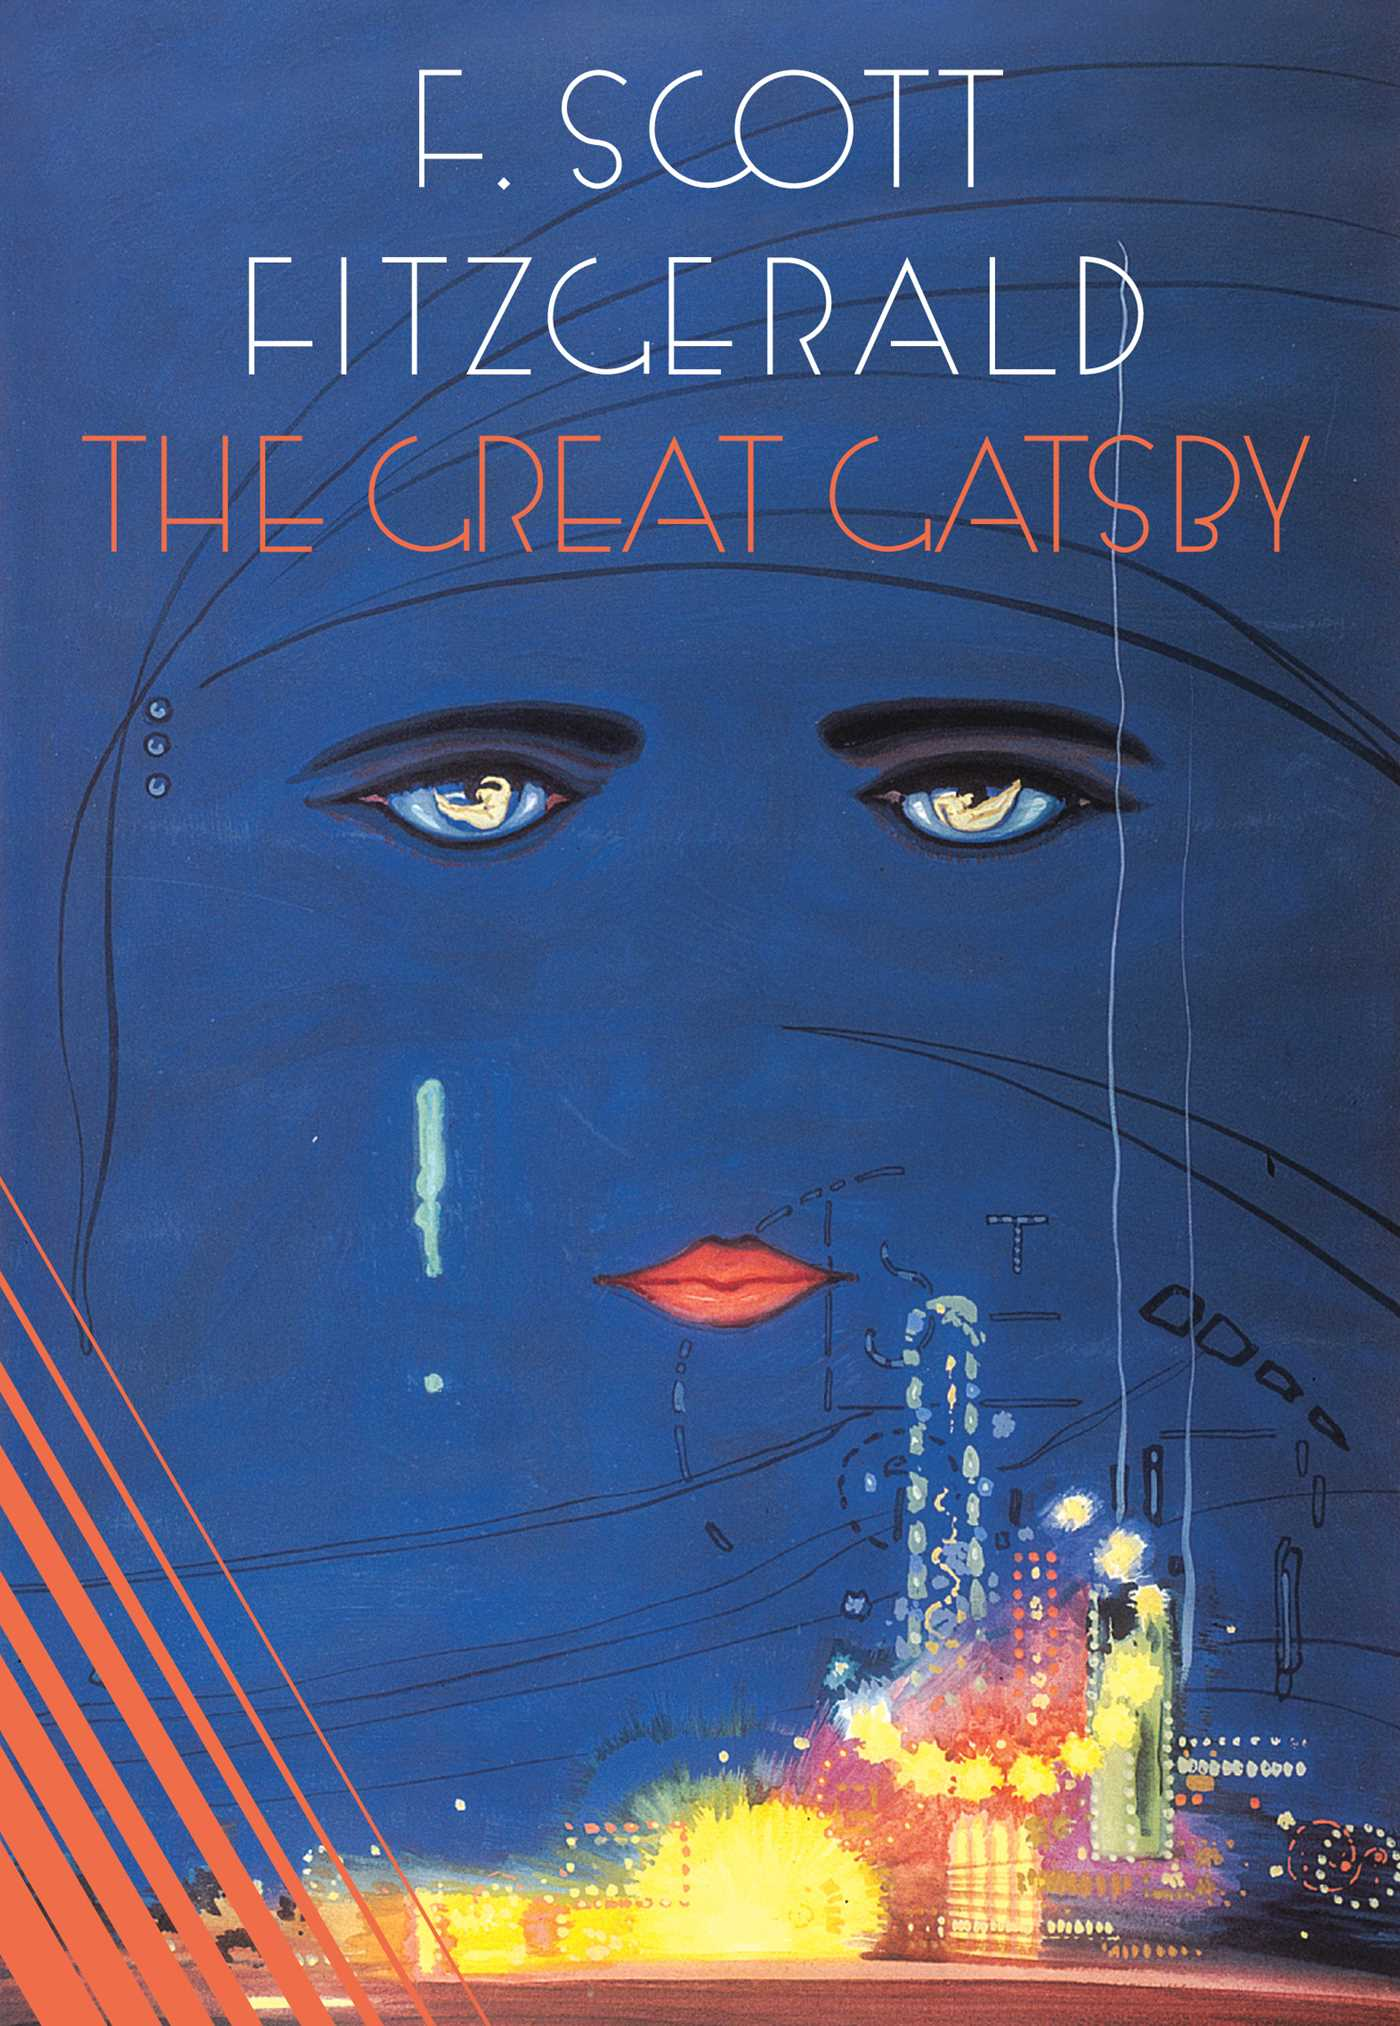 Great-gatsby-9780743246392_hr